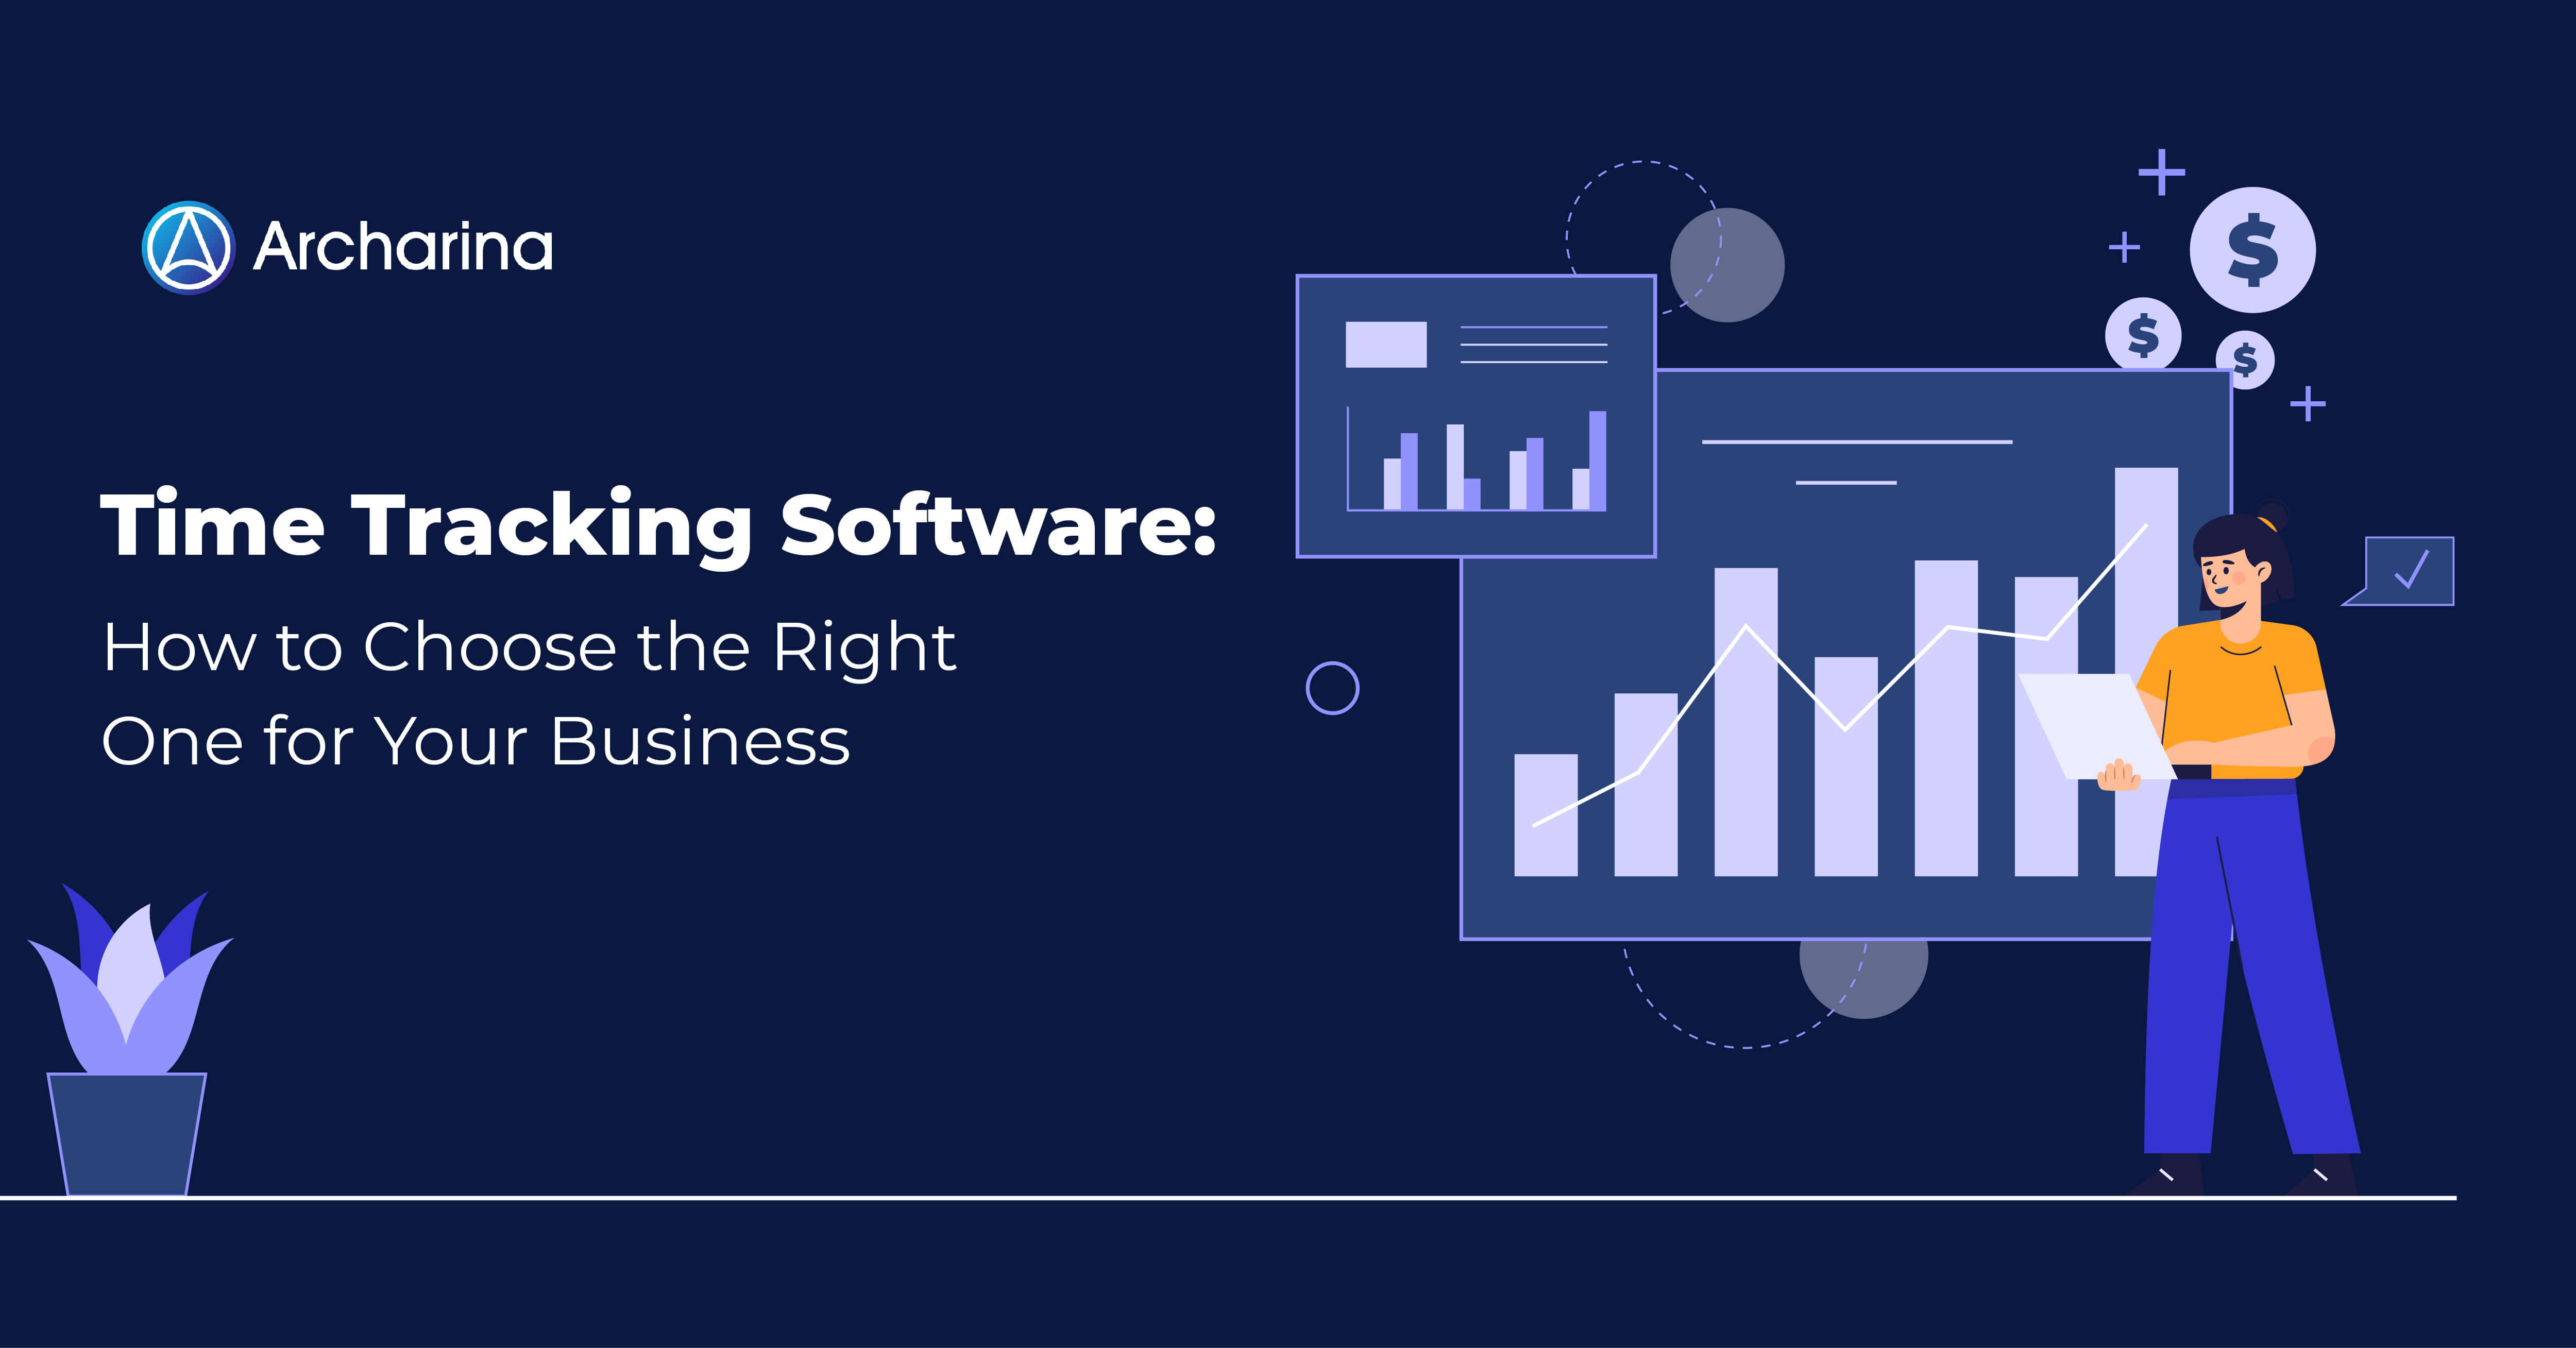 Time Tracking Software: How to Choose the Right One for Your Business